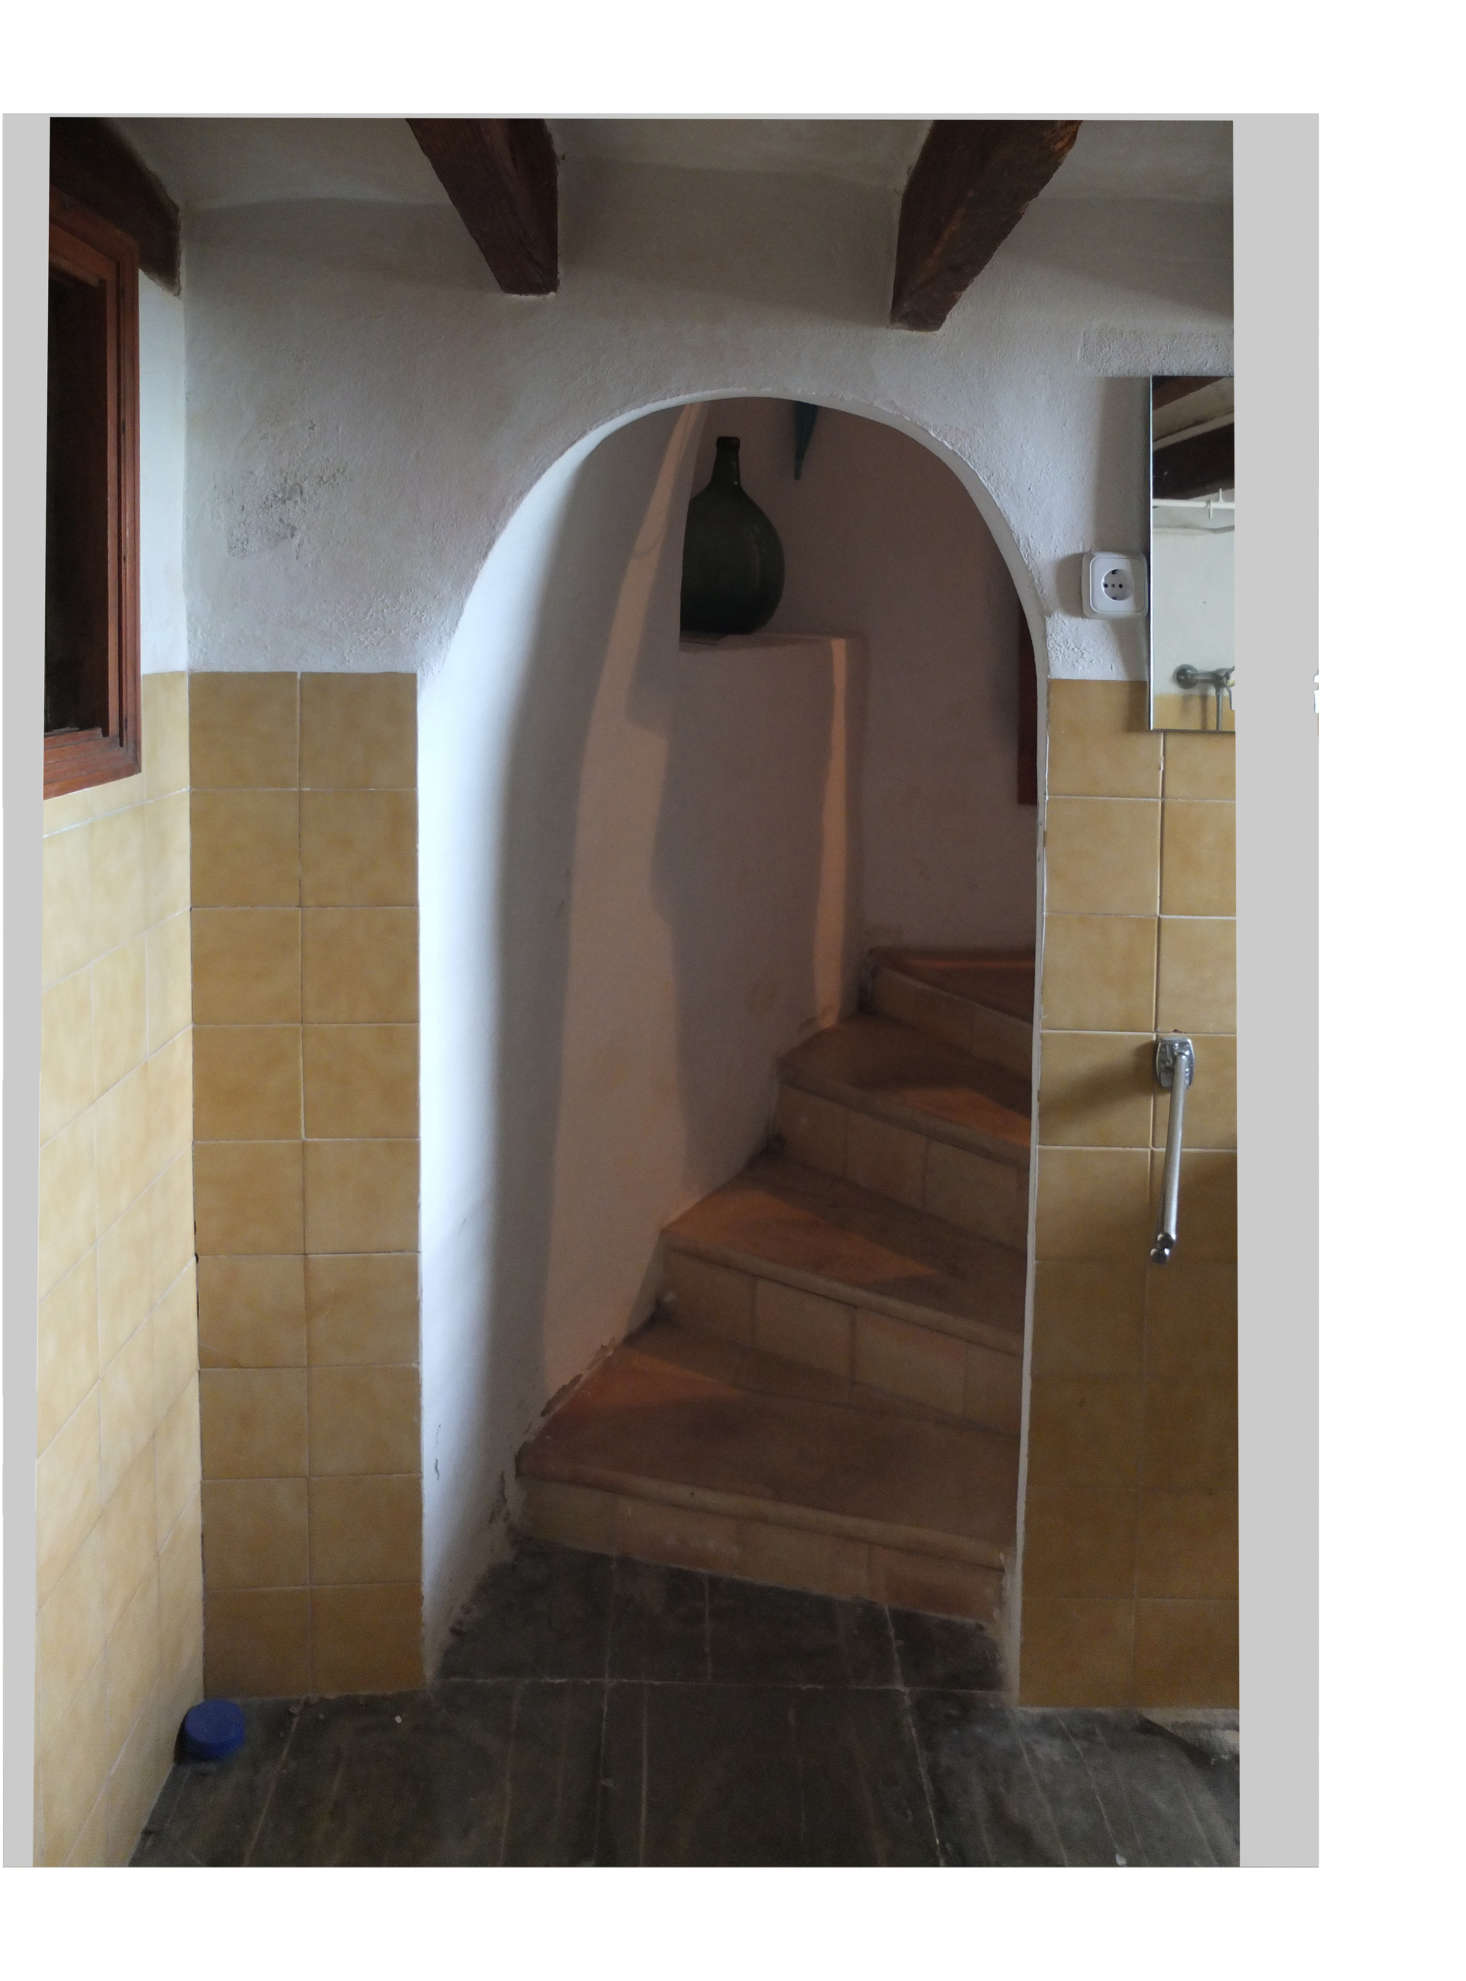 The old tiled stairway lead to a dark and cramped bath.